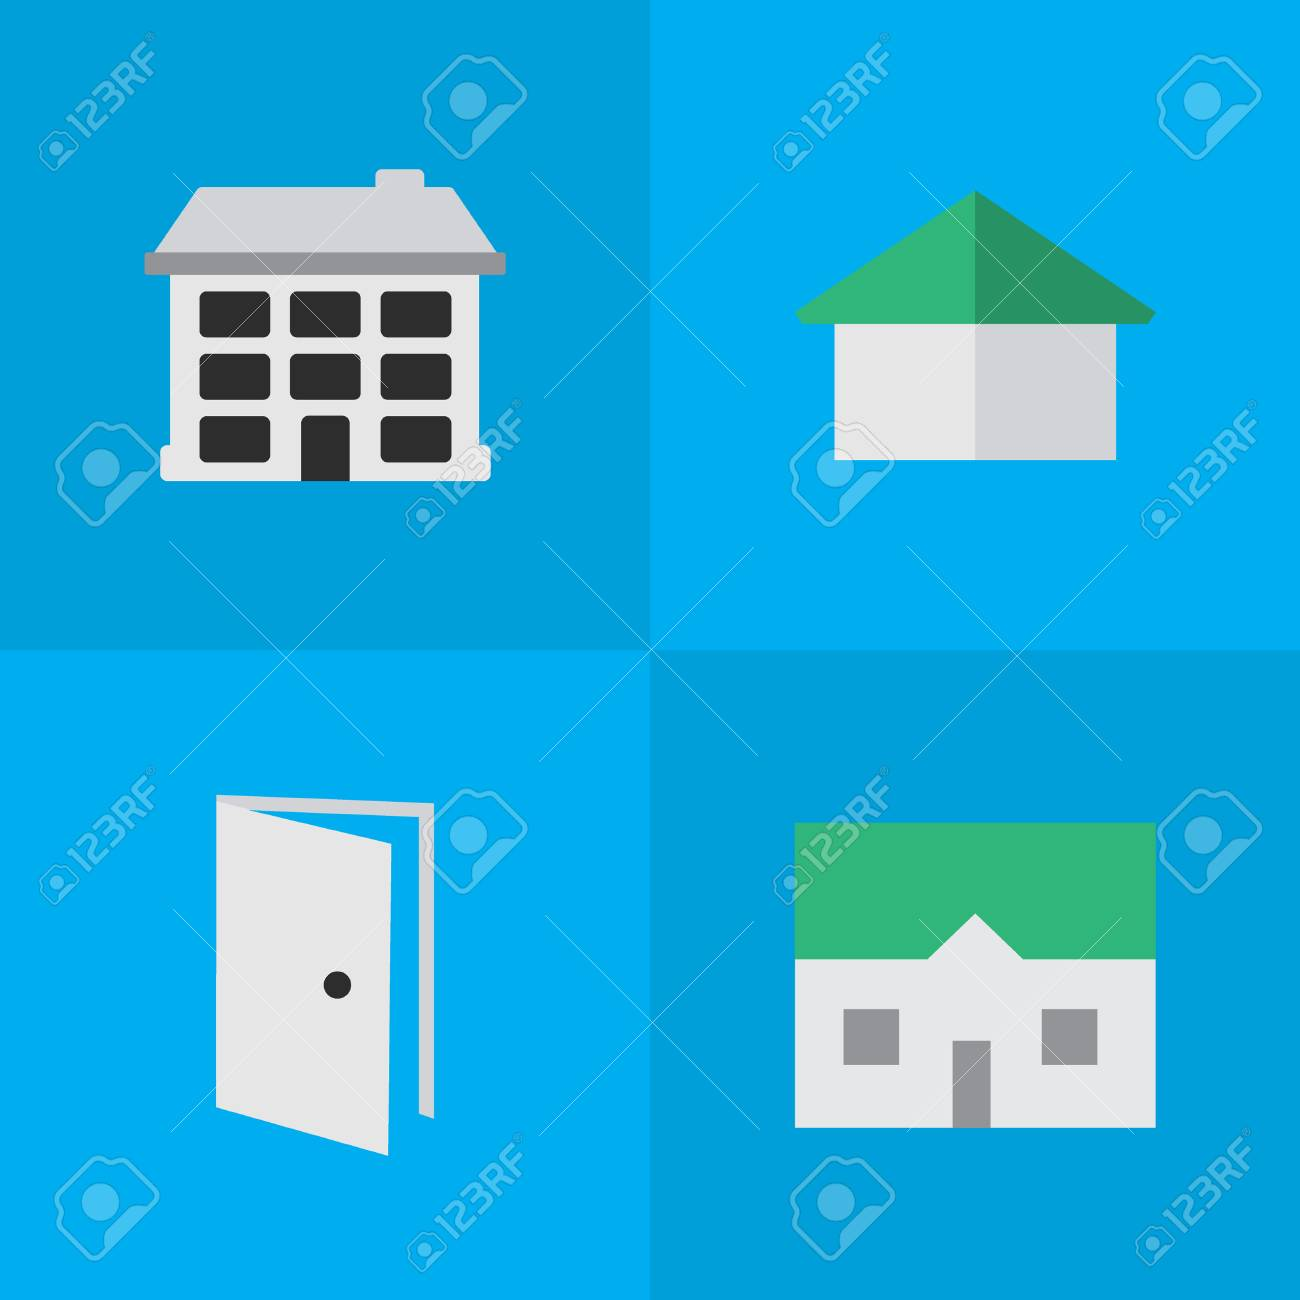 Elements House Entry Architecture And Other Synonyms Open Door And Entry. Vector  sc 1 st  123RF Stock Photo & Elements House Entry Architecture And Other Synonyms Open ...